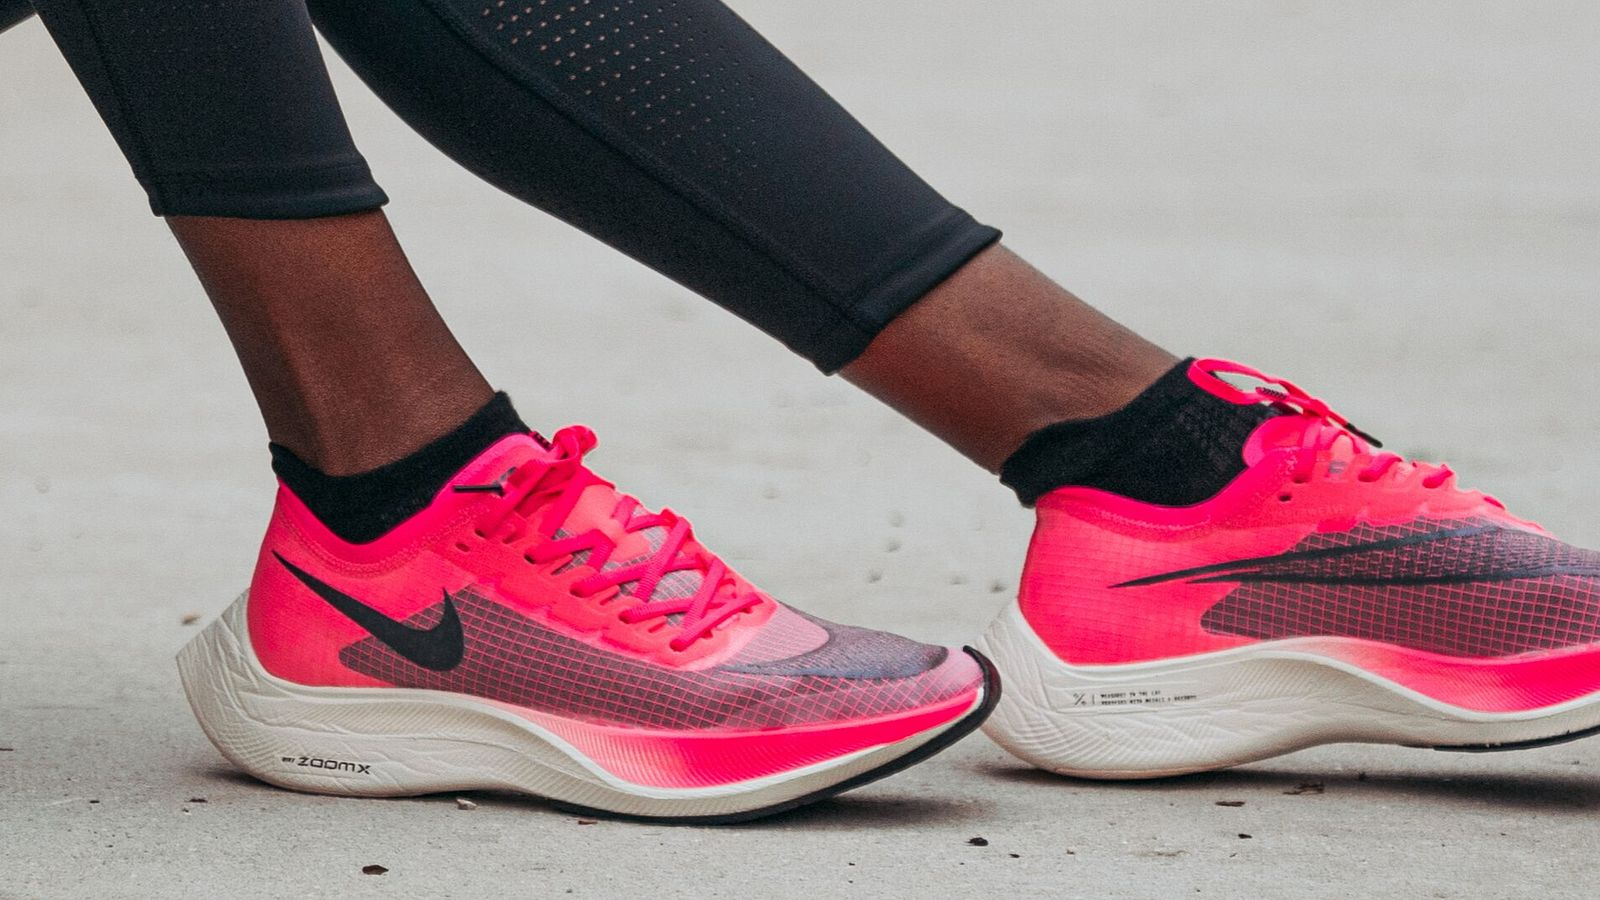 Nike-ZoomX-Vaporfly.. +80 Most Inspiring Workout Shoes Ideas for Women